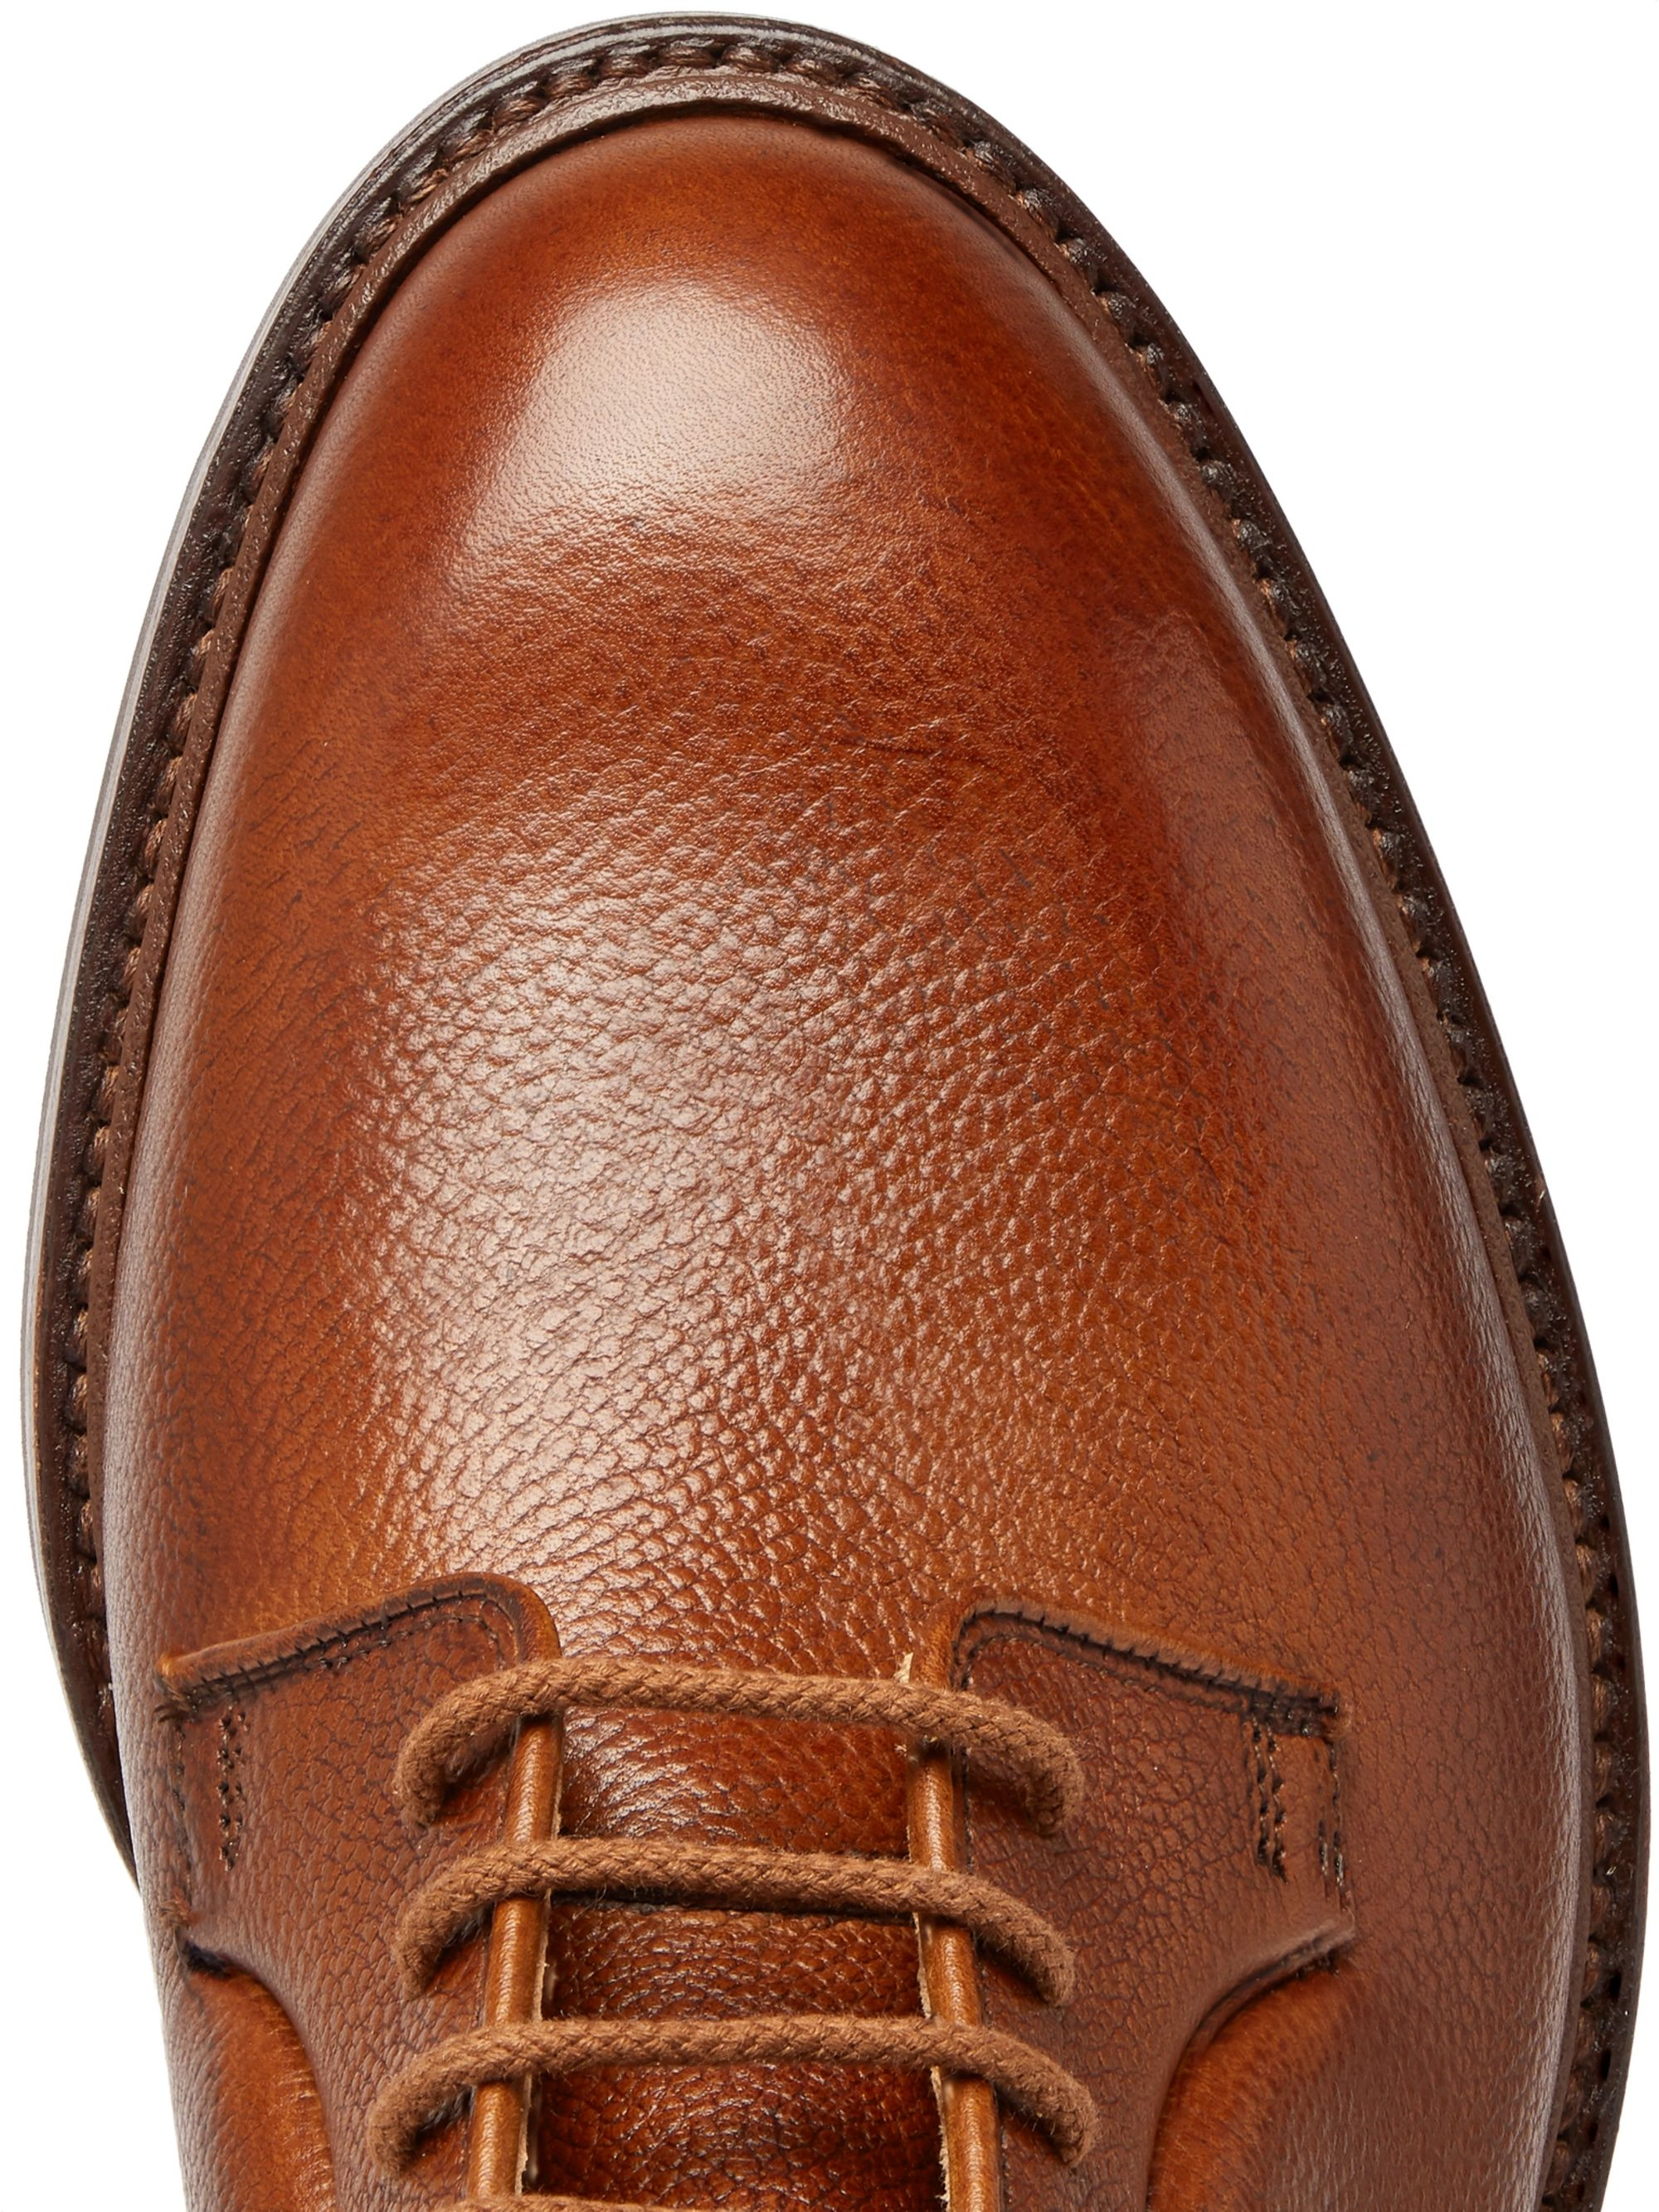 George Cleverley Archie Full-Grain Leather Derby Shoes